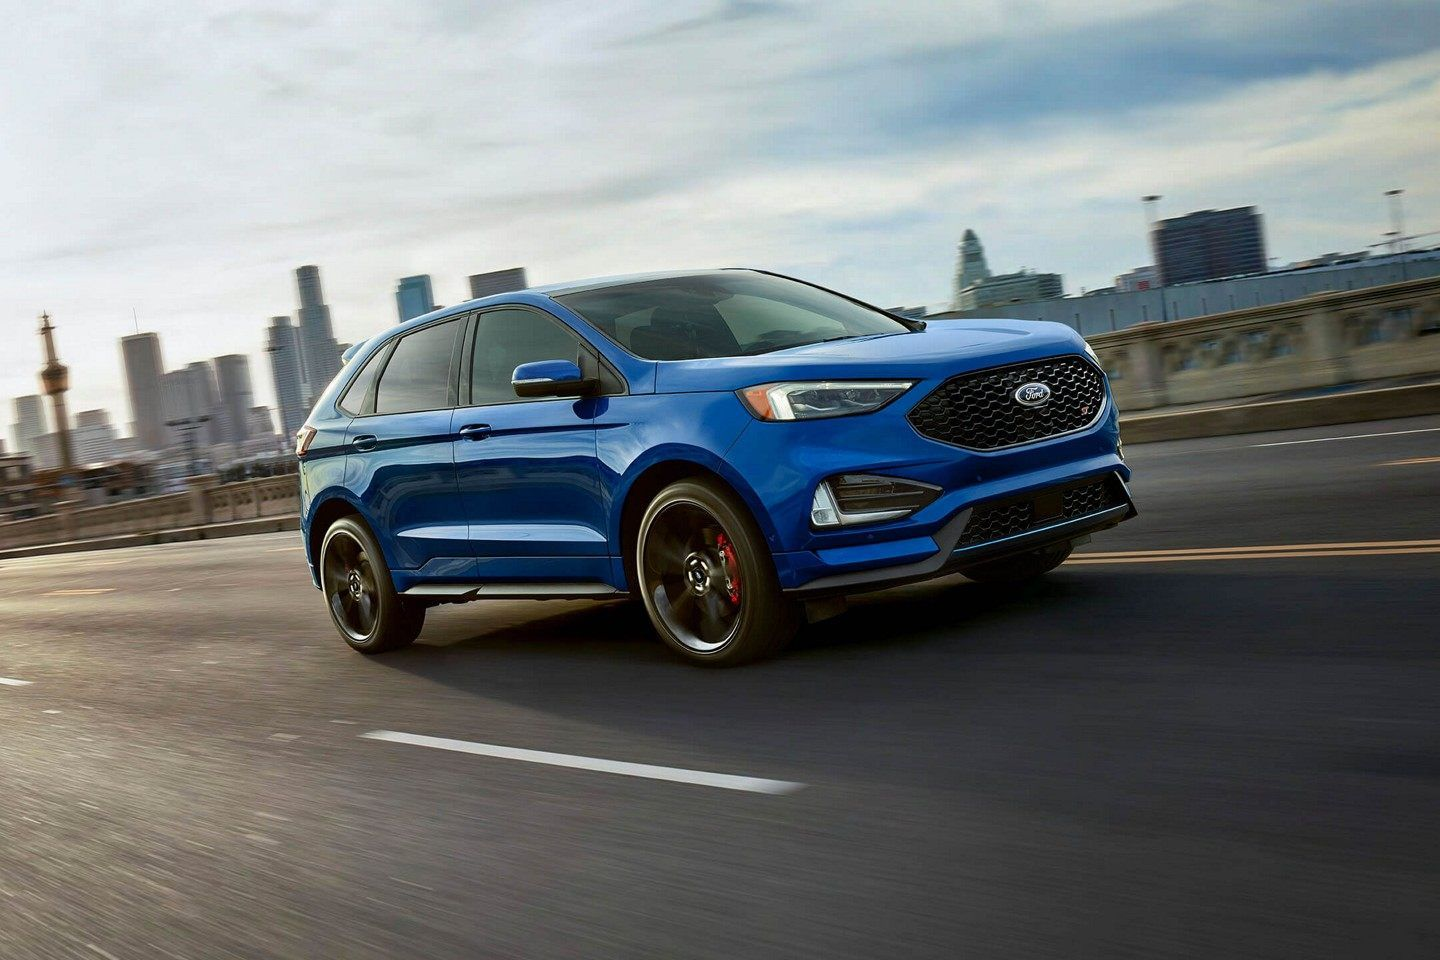 The Photo Is Couresty Of Ford Media The All New 2019 Ford Edge Can Be Found At Planet Ford In Spring Texas Ford Suv Models Ford Suv Suv Models